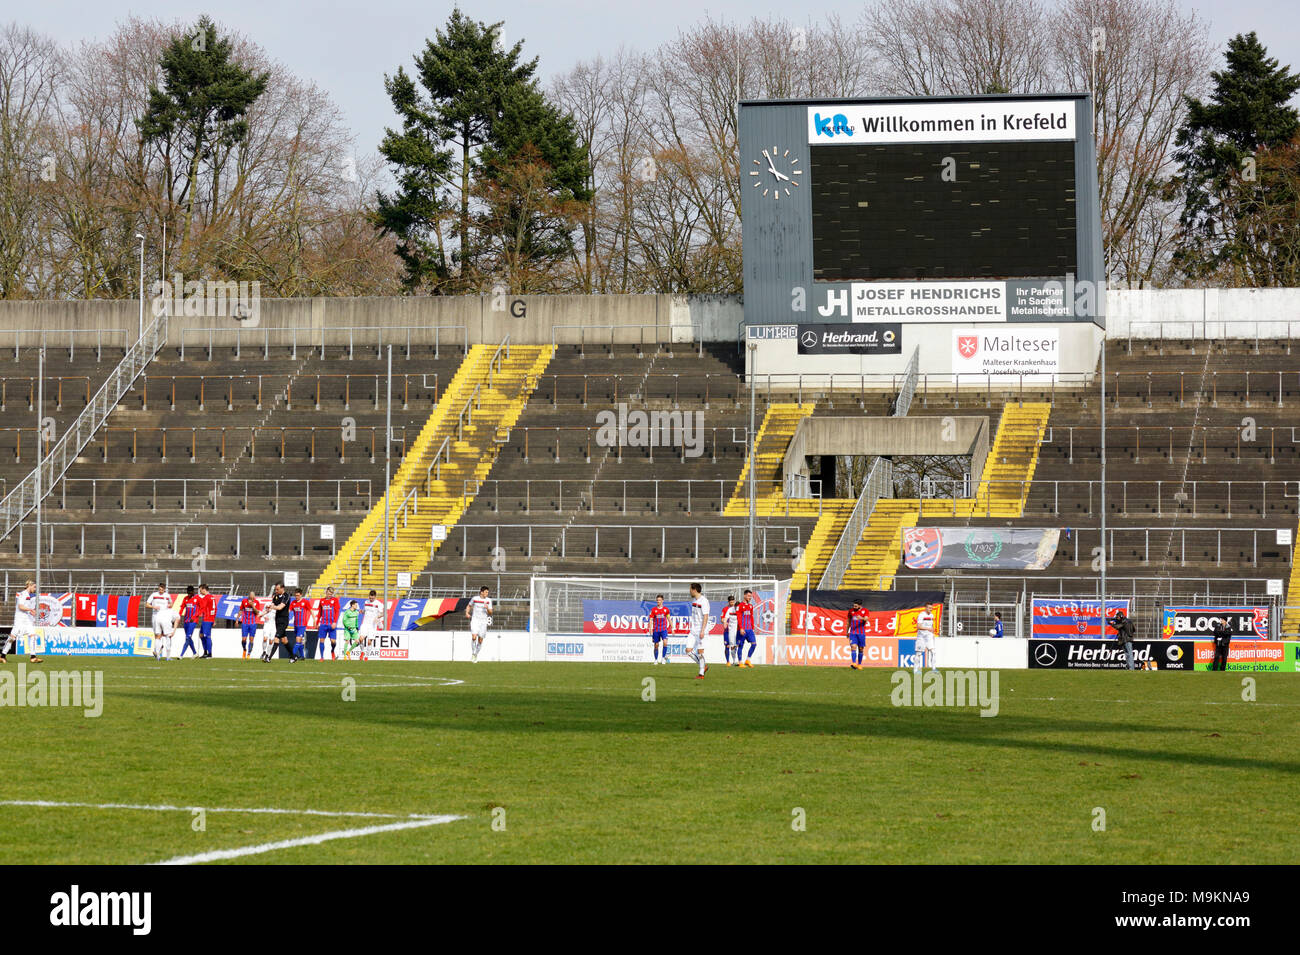 sports, football, Regional League West, 2017/2018, Grotenburg Stadium in Krefeld-Bockum, Lower Rhine, North Rhine-Westphalia, home ground of KFC Uerdingen 05, ramshackle, dilapidated, in need of renovation, grand stand - Stock Image